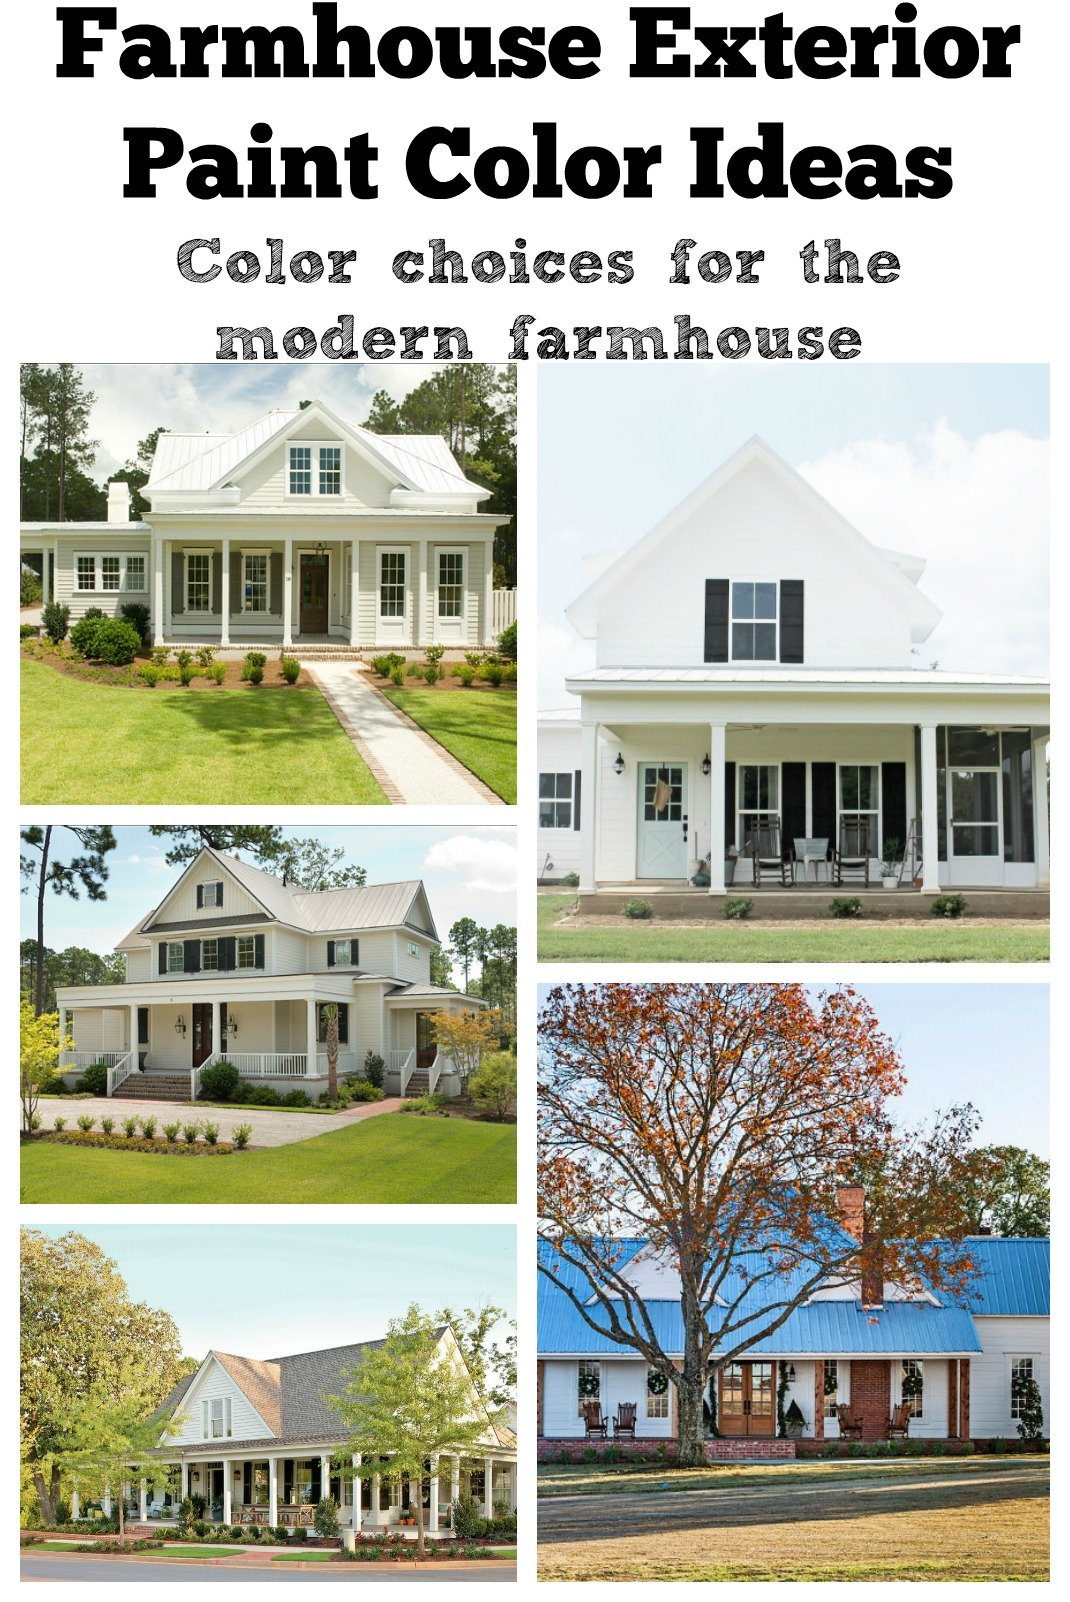 Farmhouse Exterior Paint Color Ideas Exterior Color Choices For The Modern Farmhouse Sarah Joy